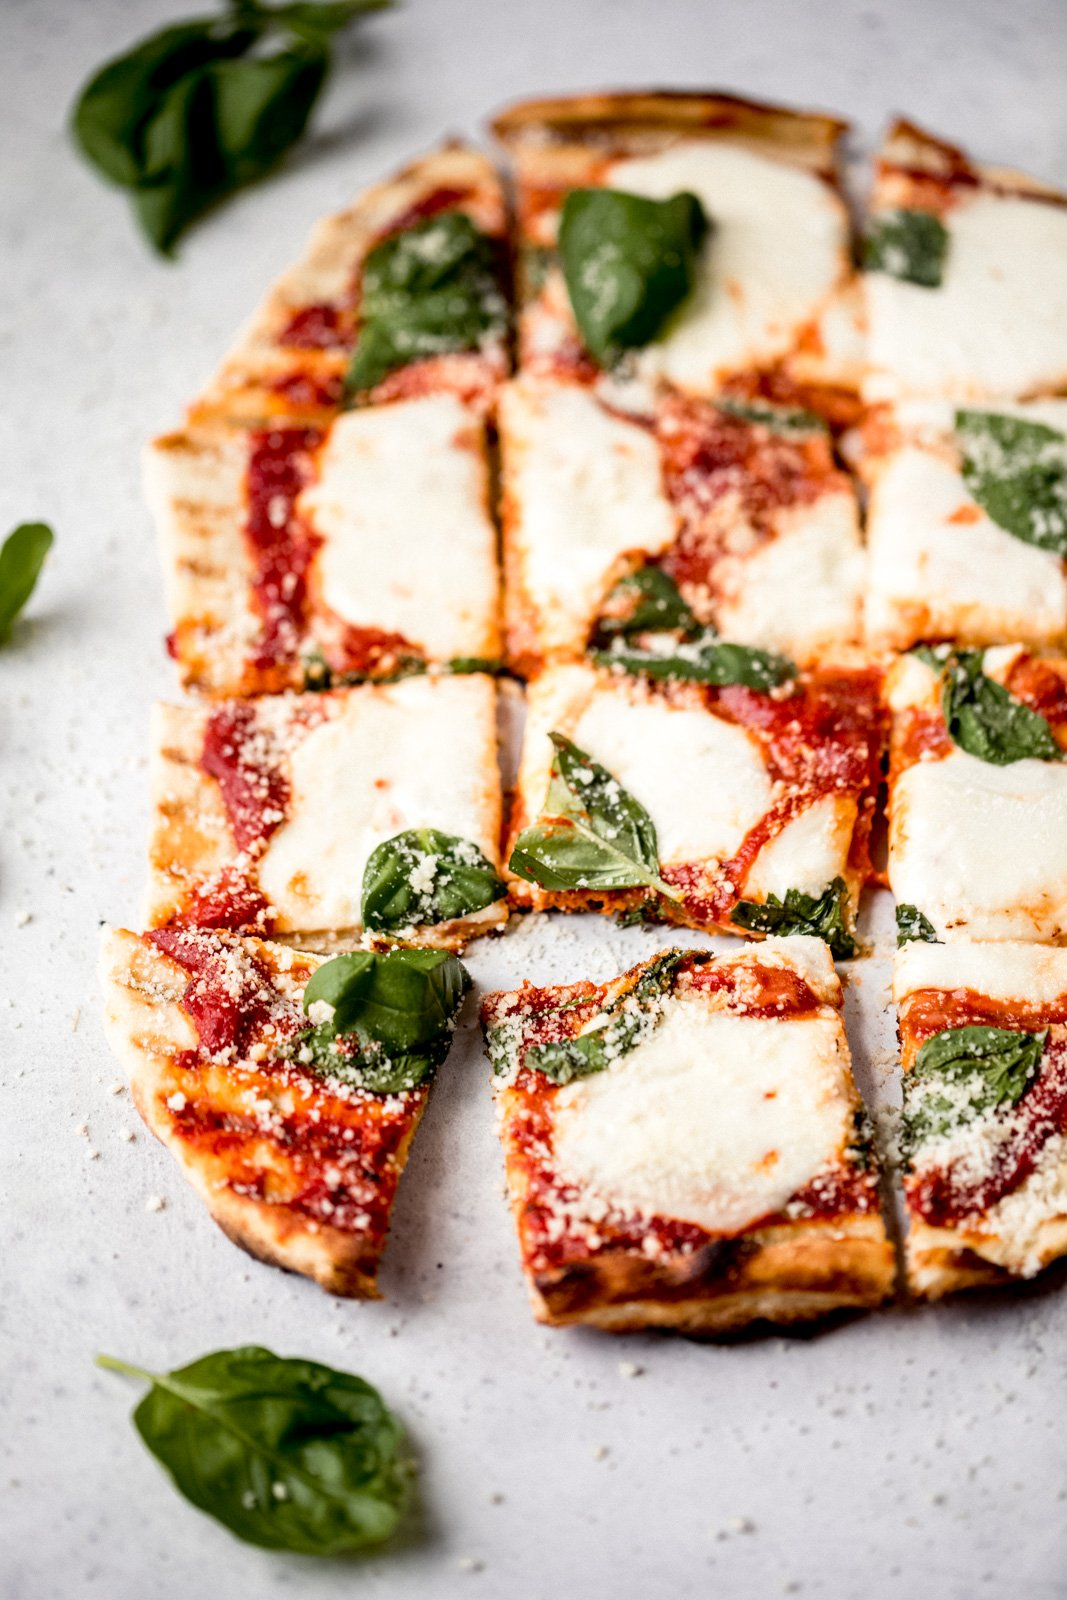 grilled pizza with cheese and basil cut into squares